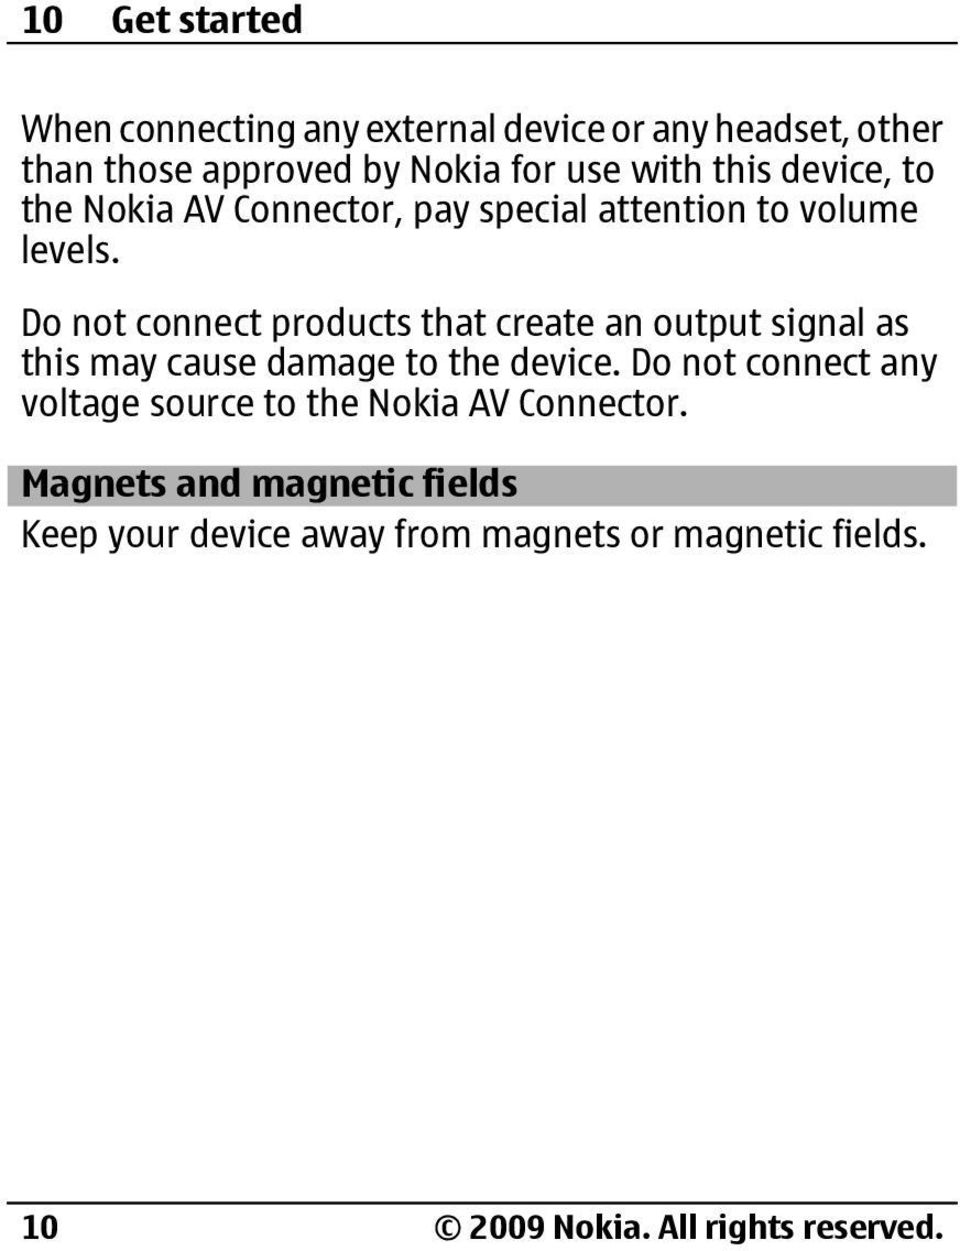 Do not connect products that create an output signal as this may cause damage to the device.